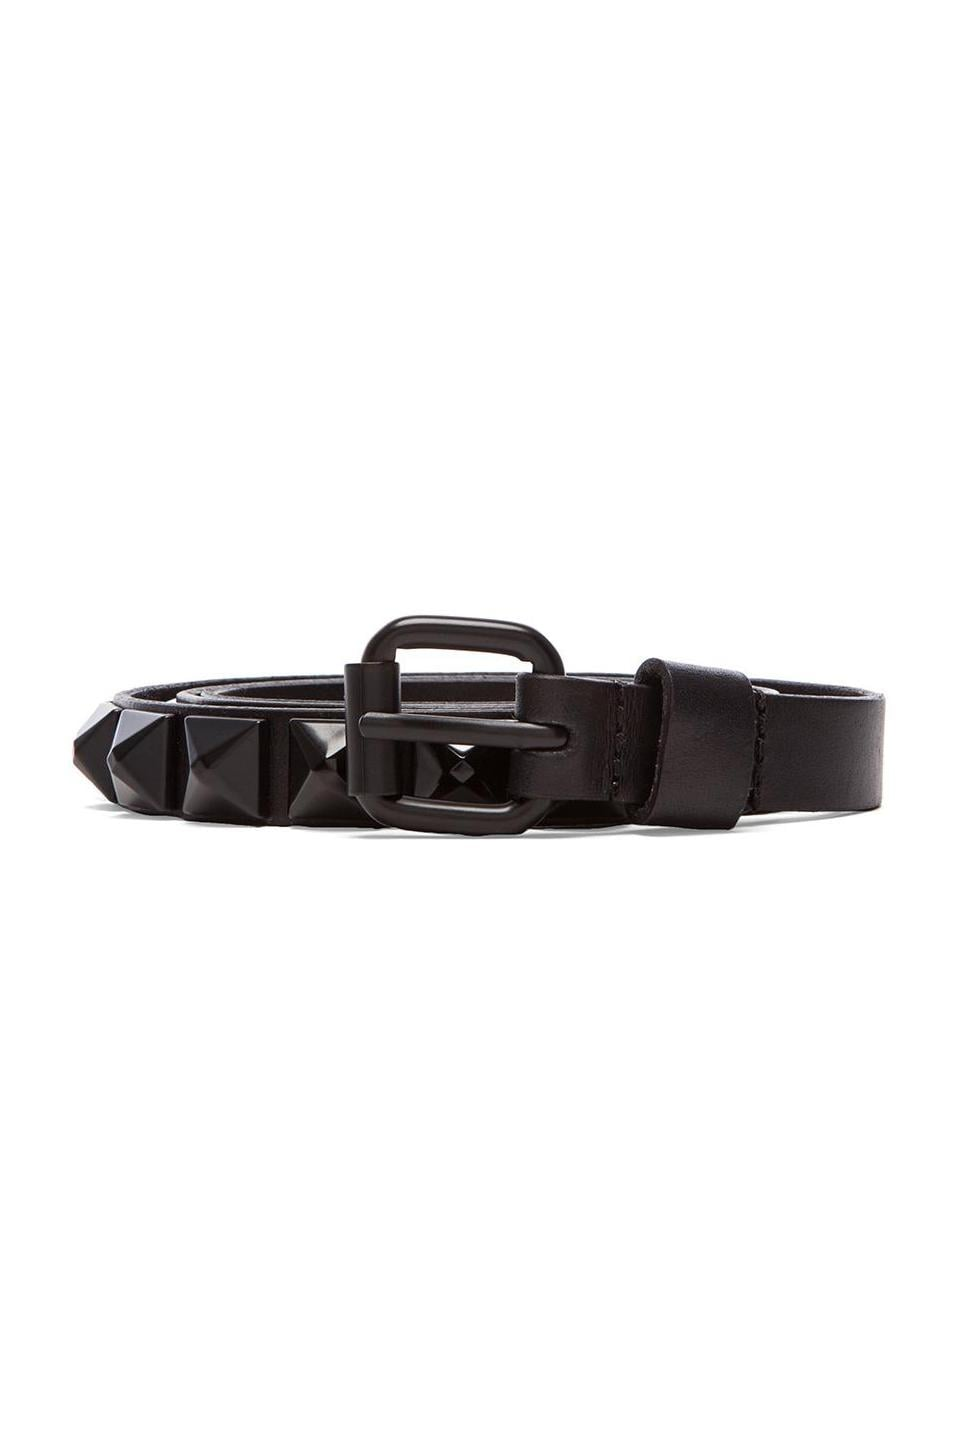 Linea Pelle Pyramid Studs Hip Belt in Black/Black